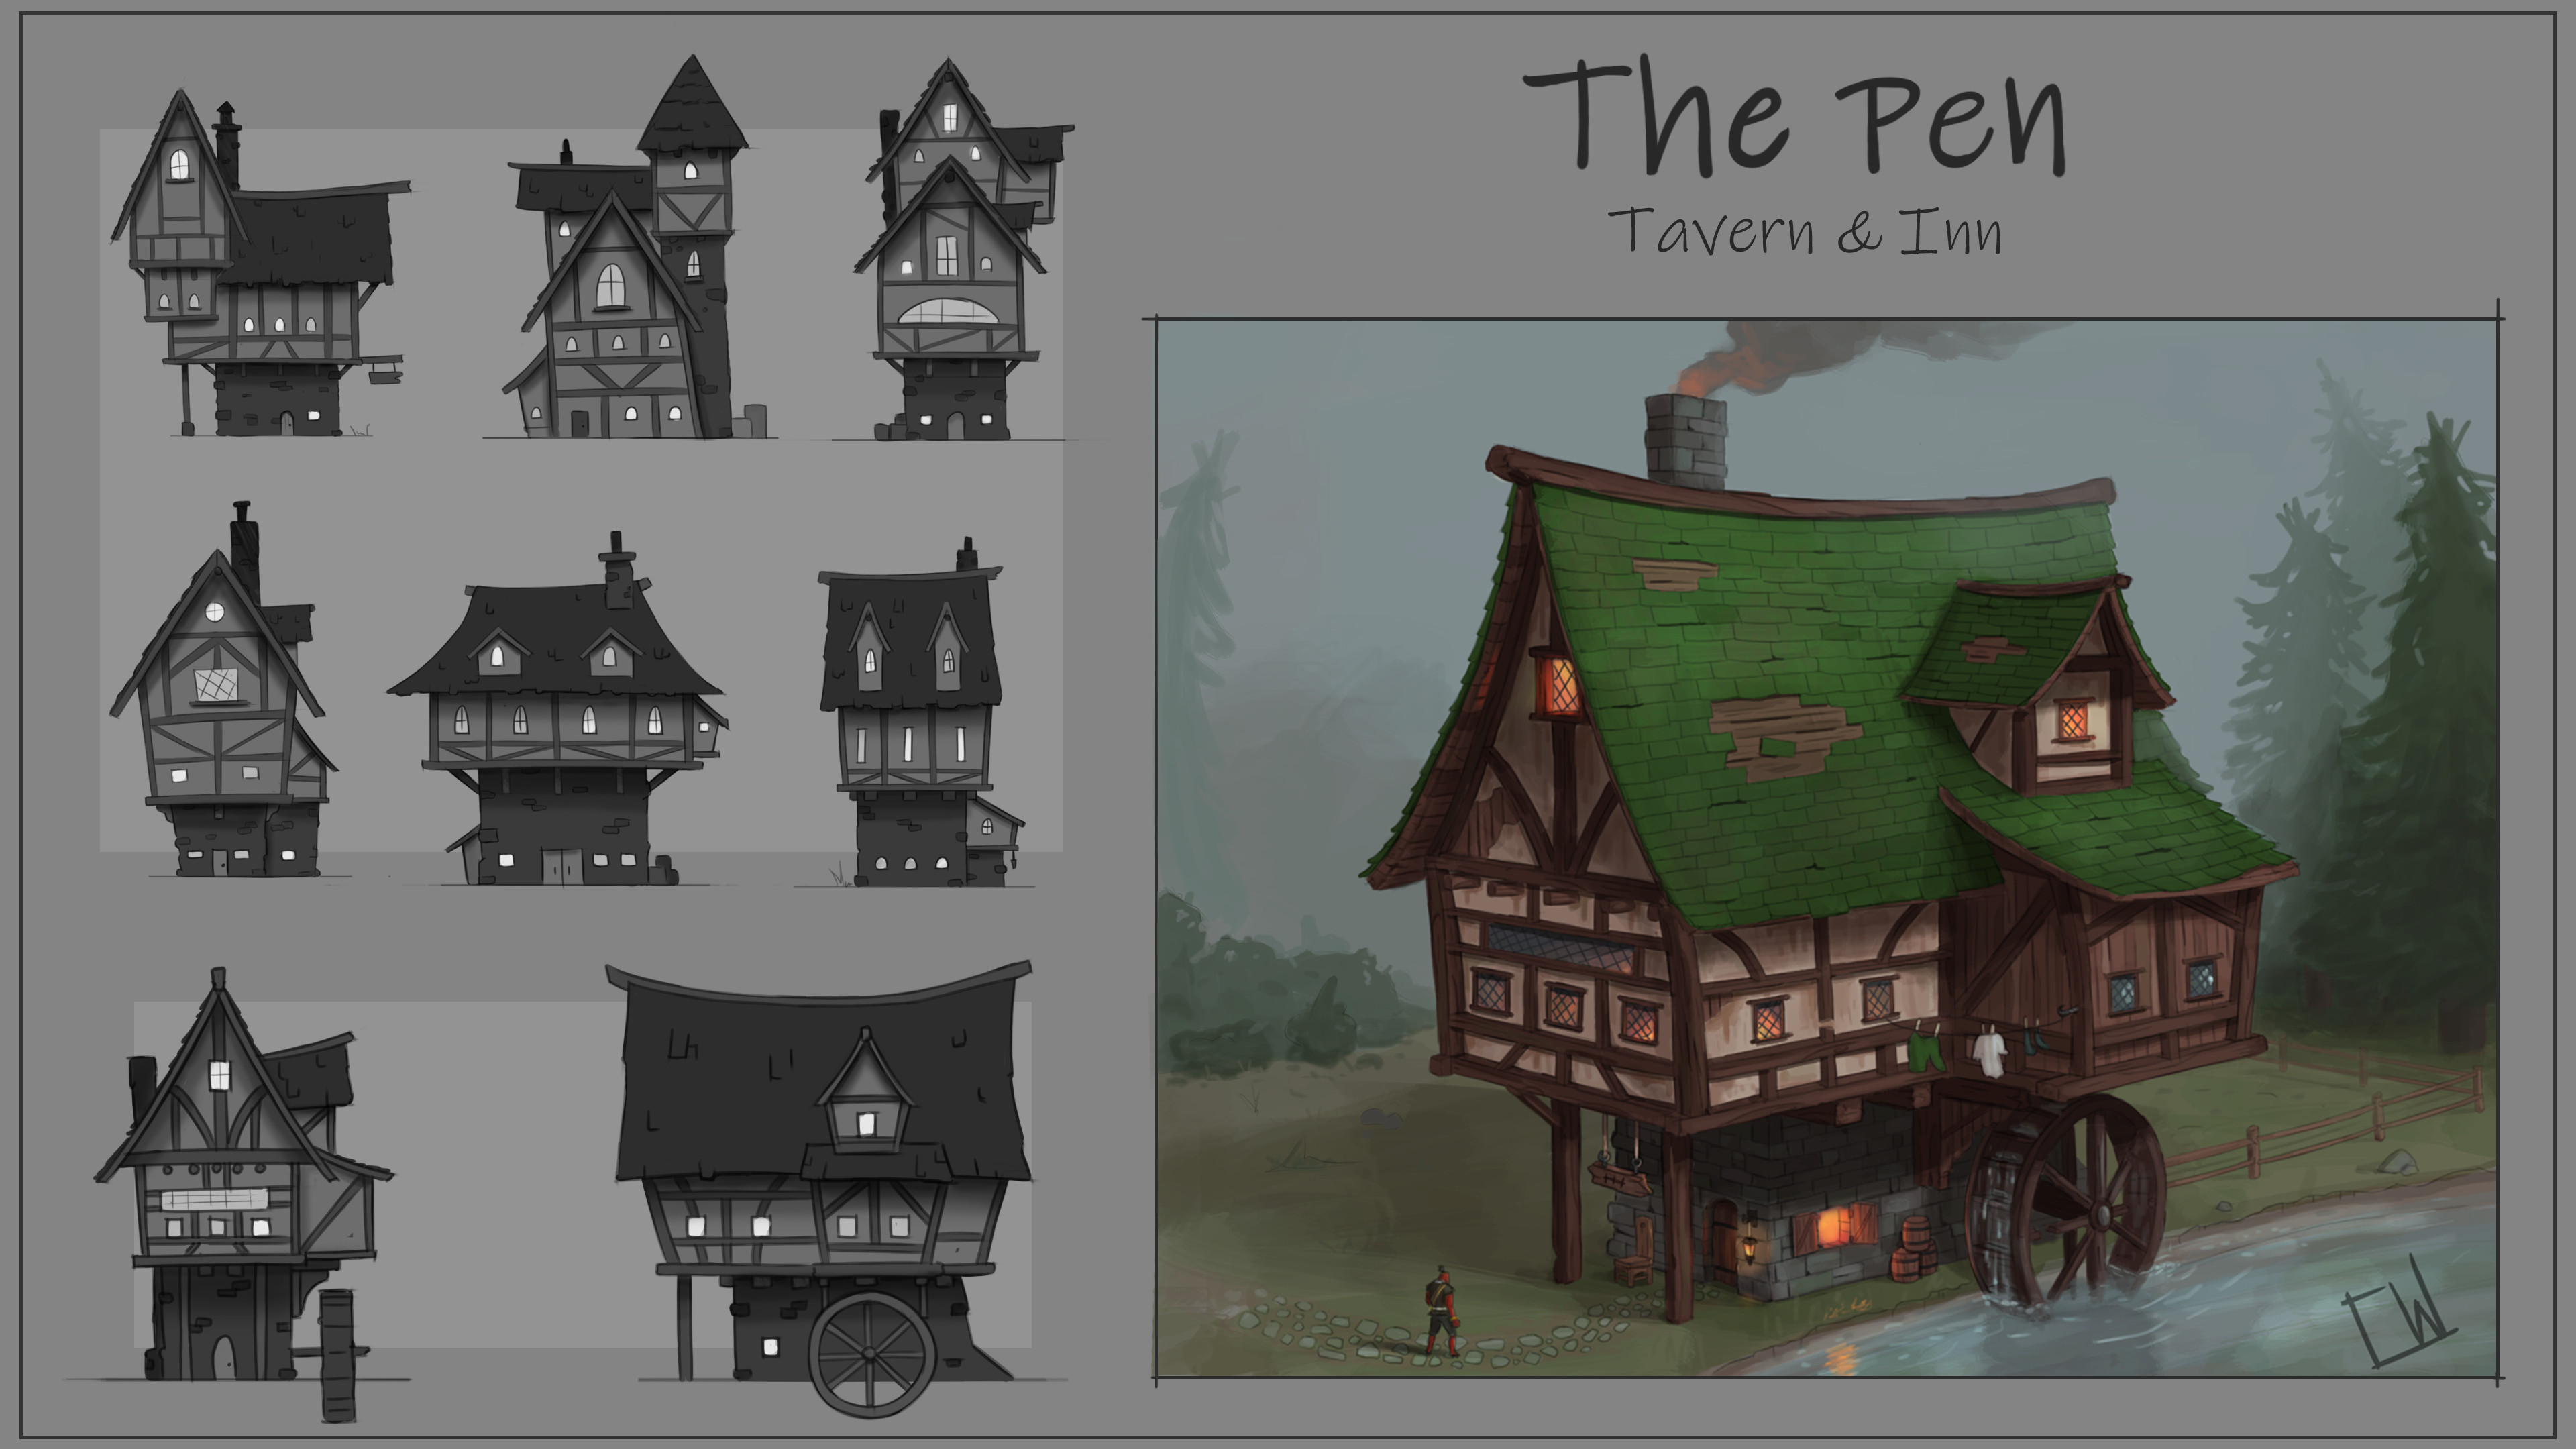 The pen Tavern & Inn